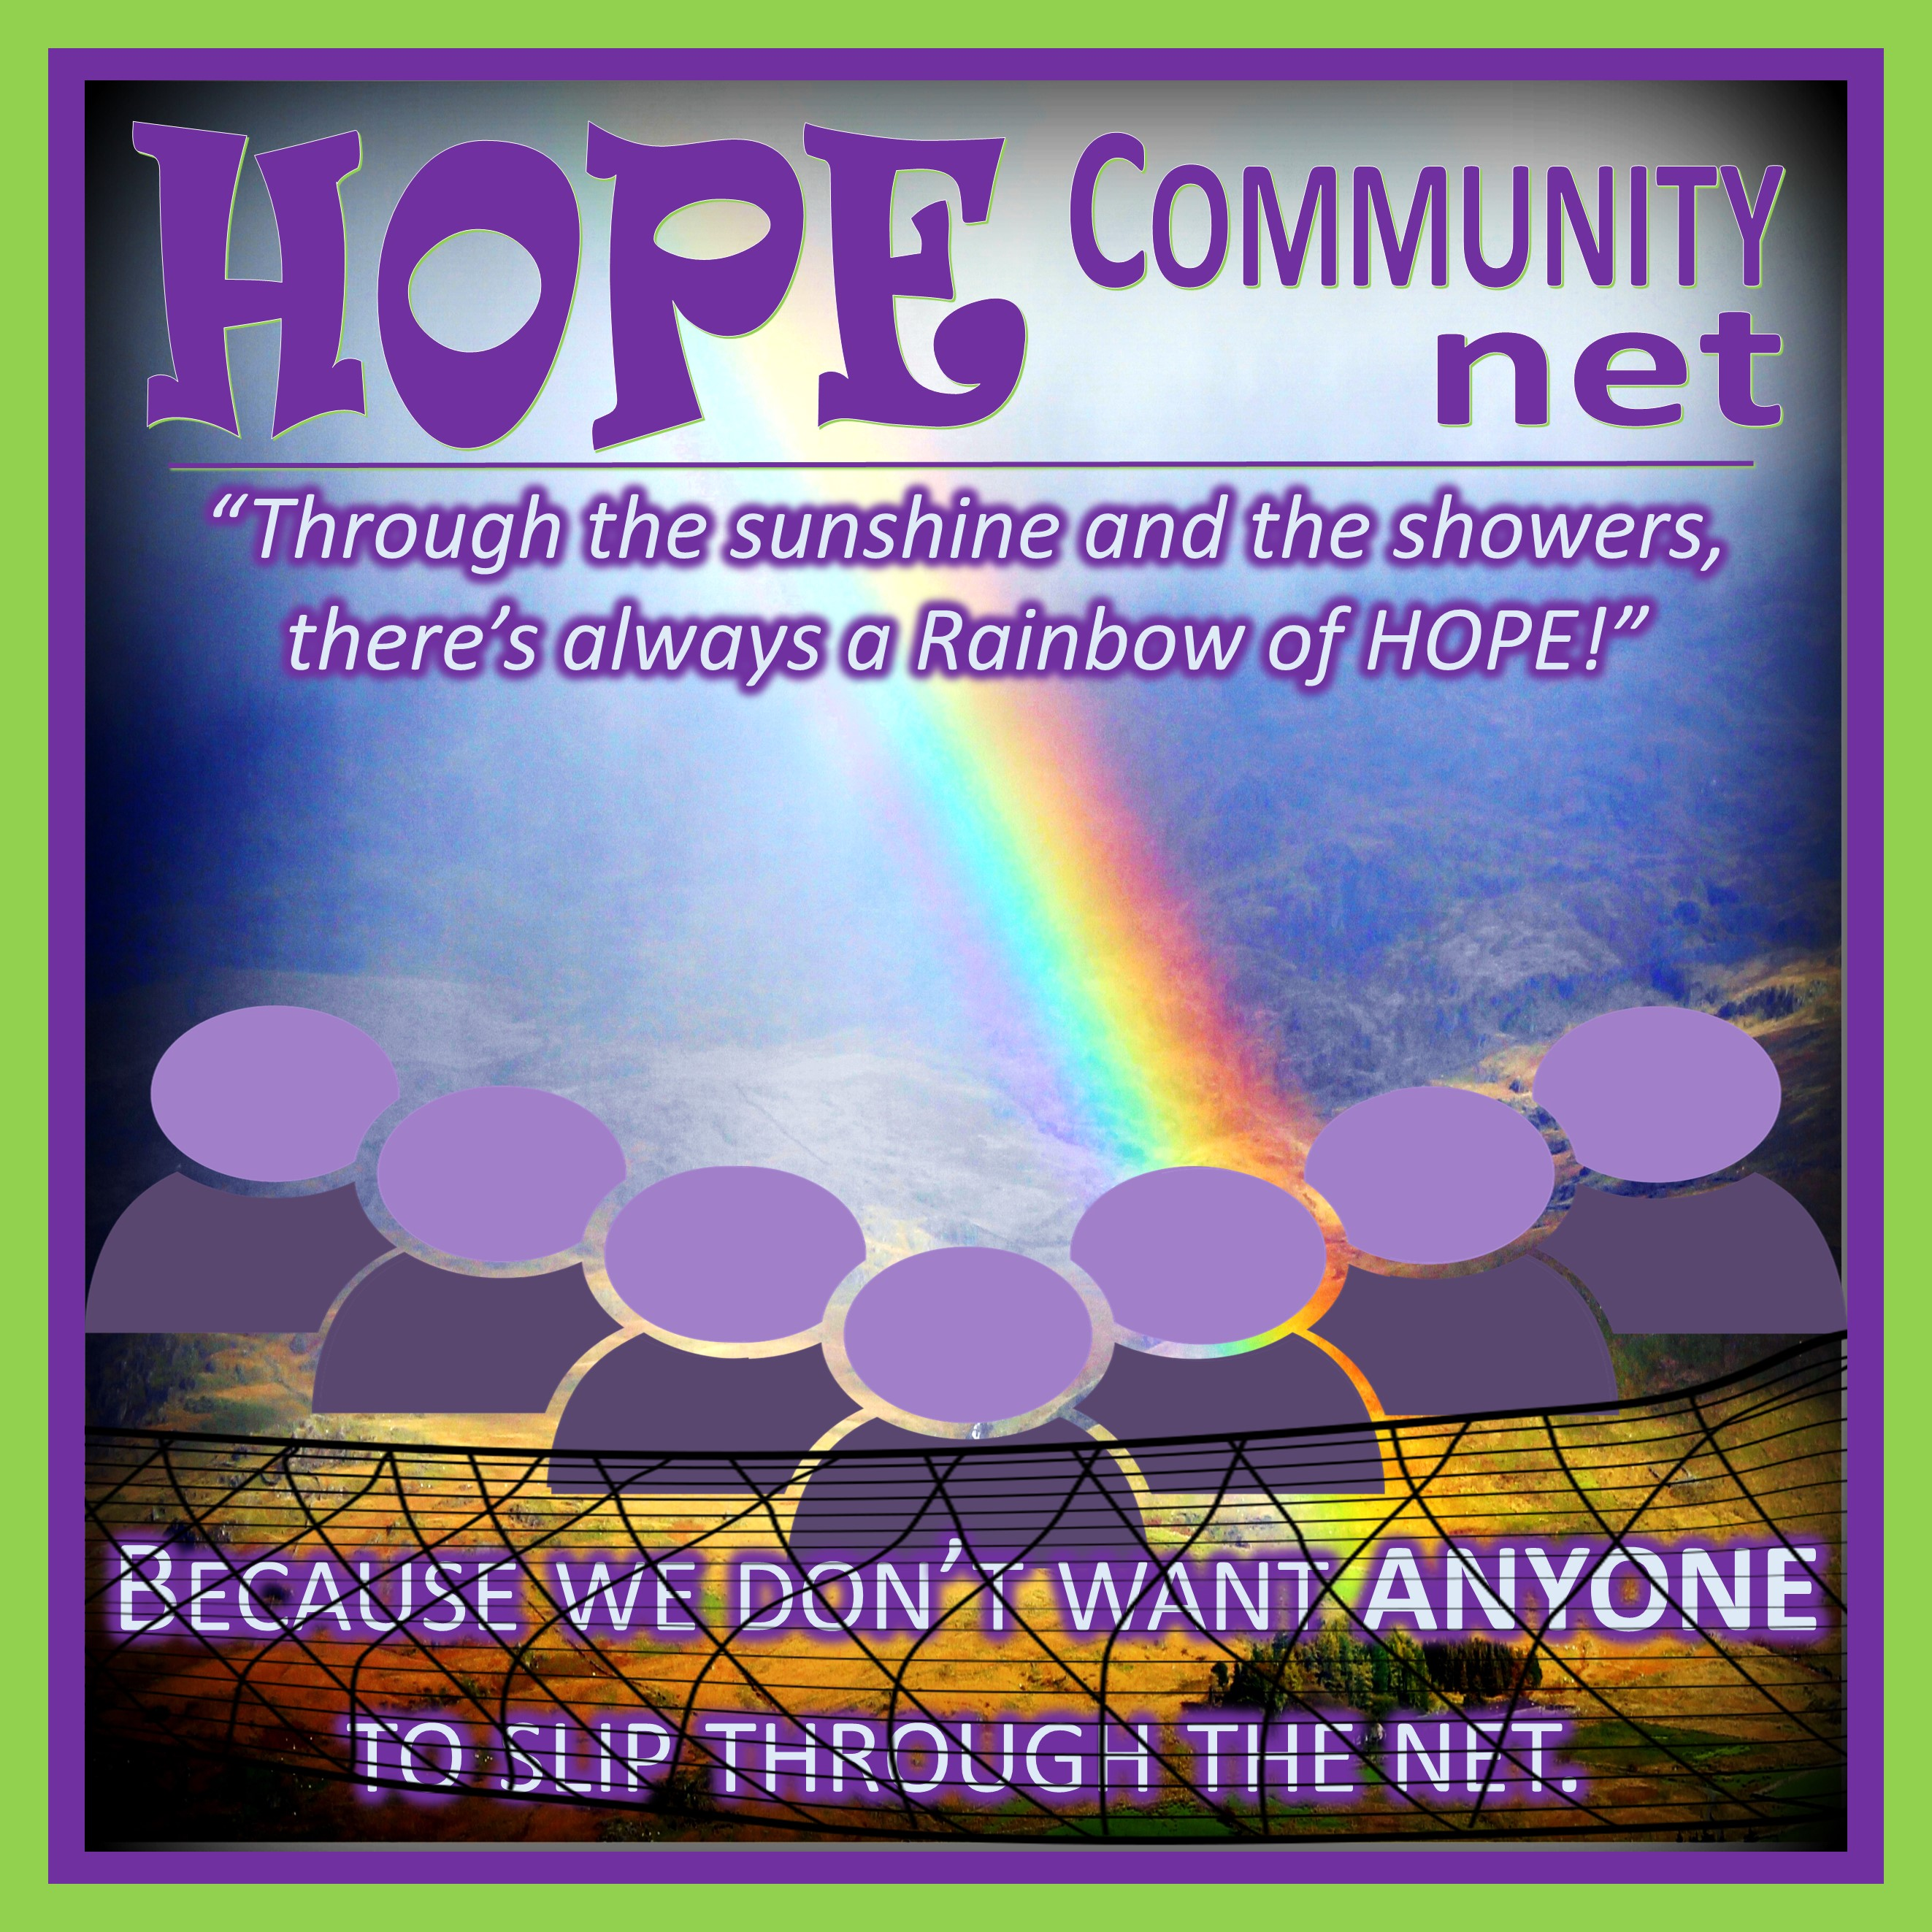 HOPE Community Net - square